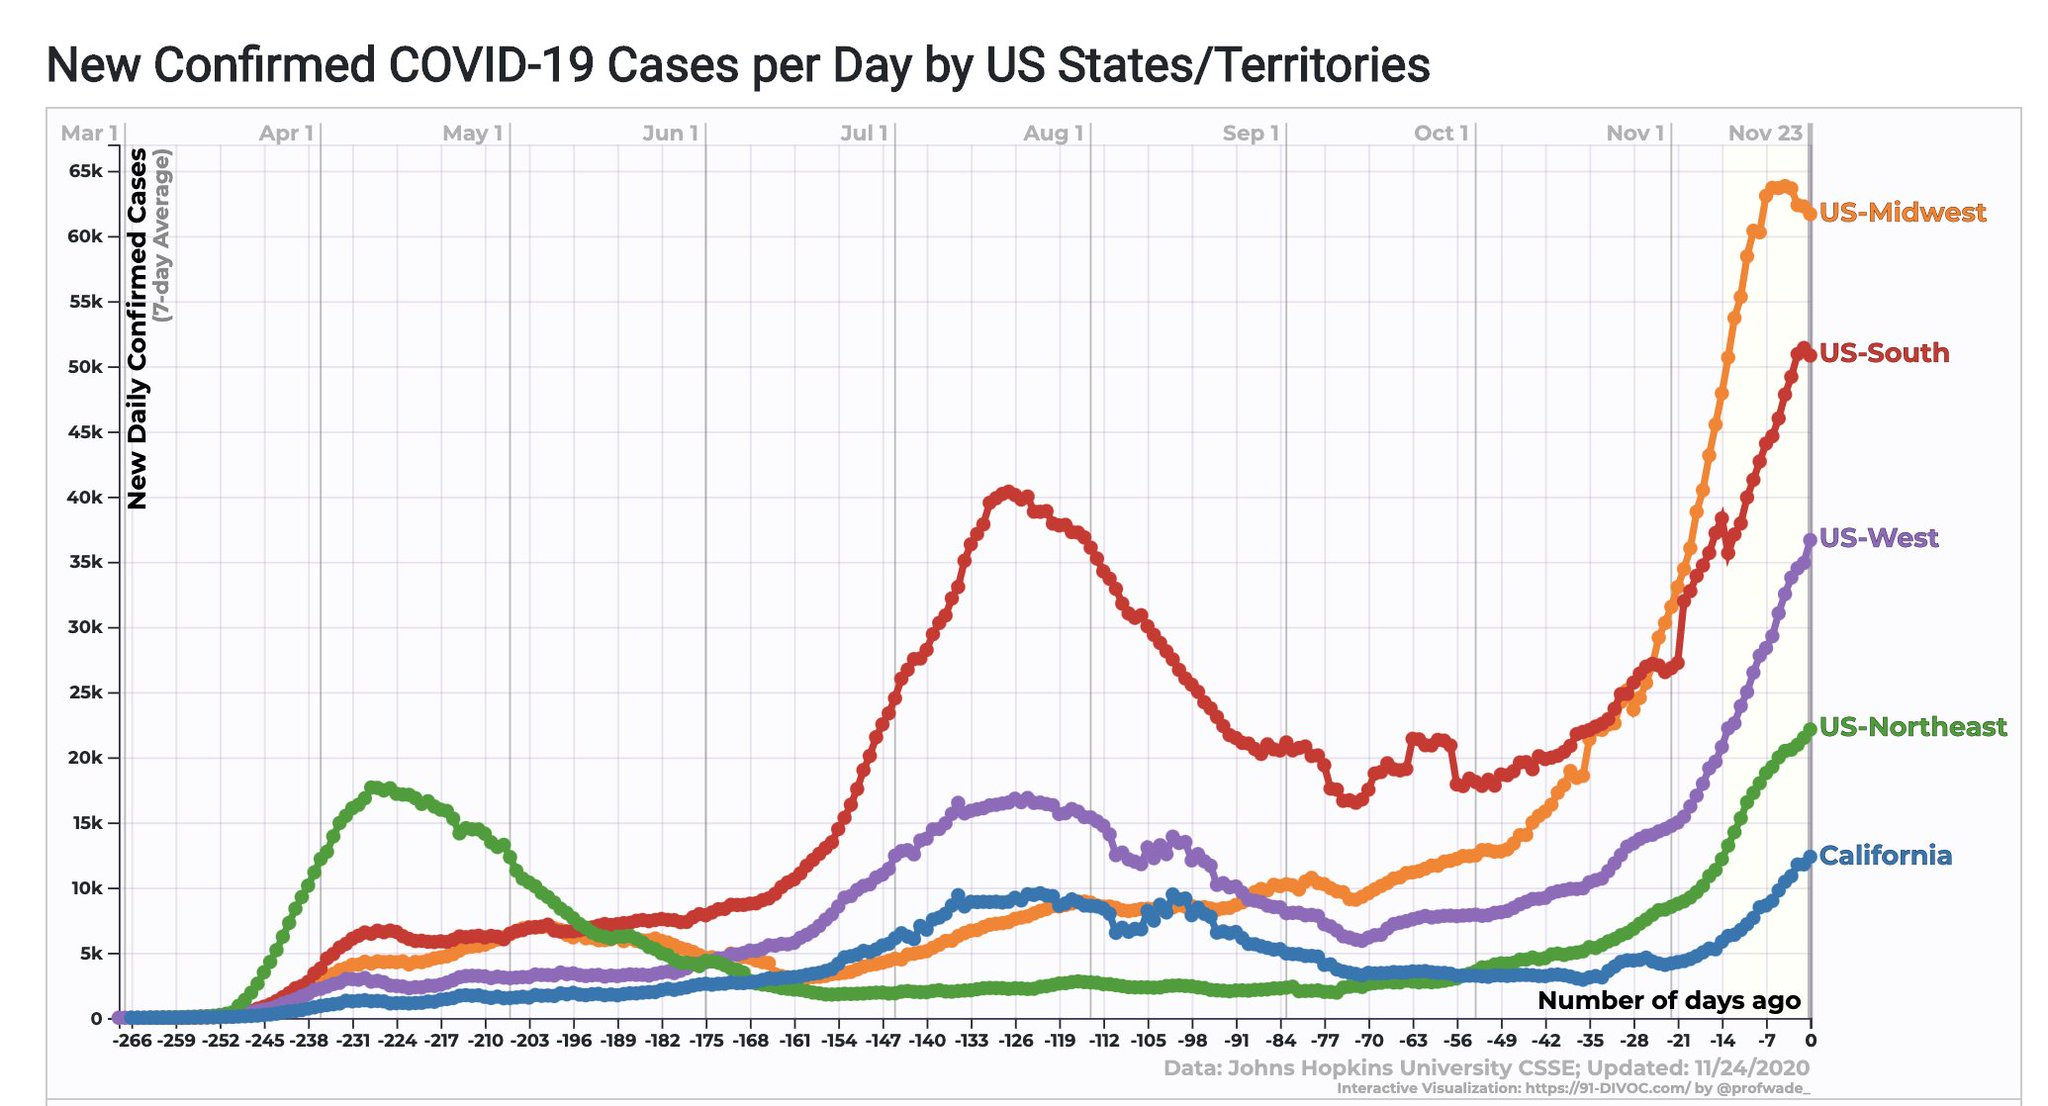 COVID-19 cases by territories - Migrating to California feels safer